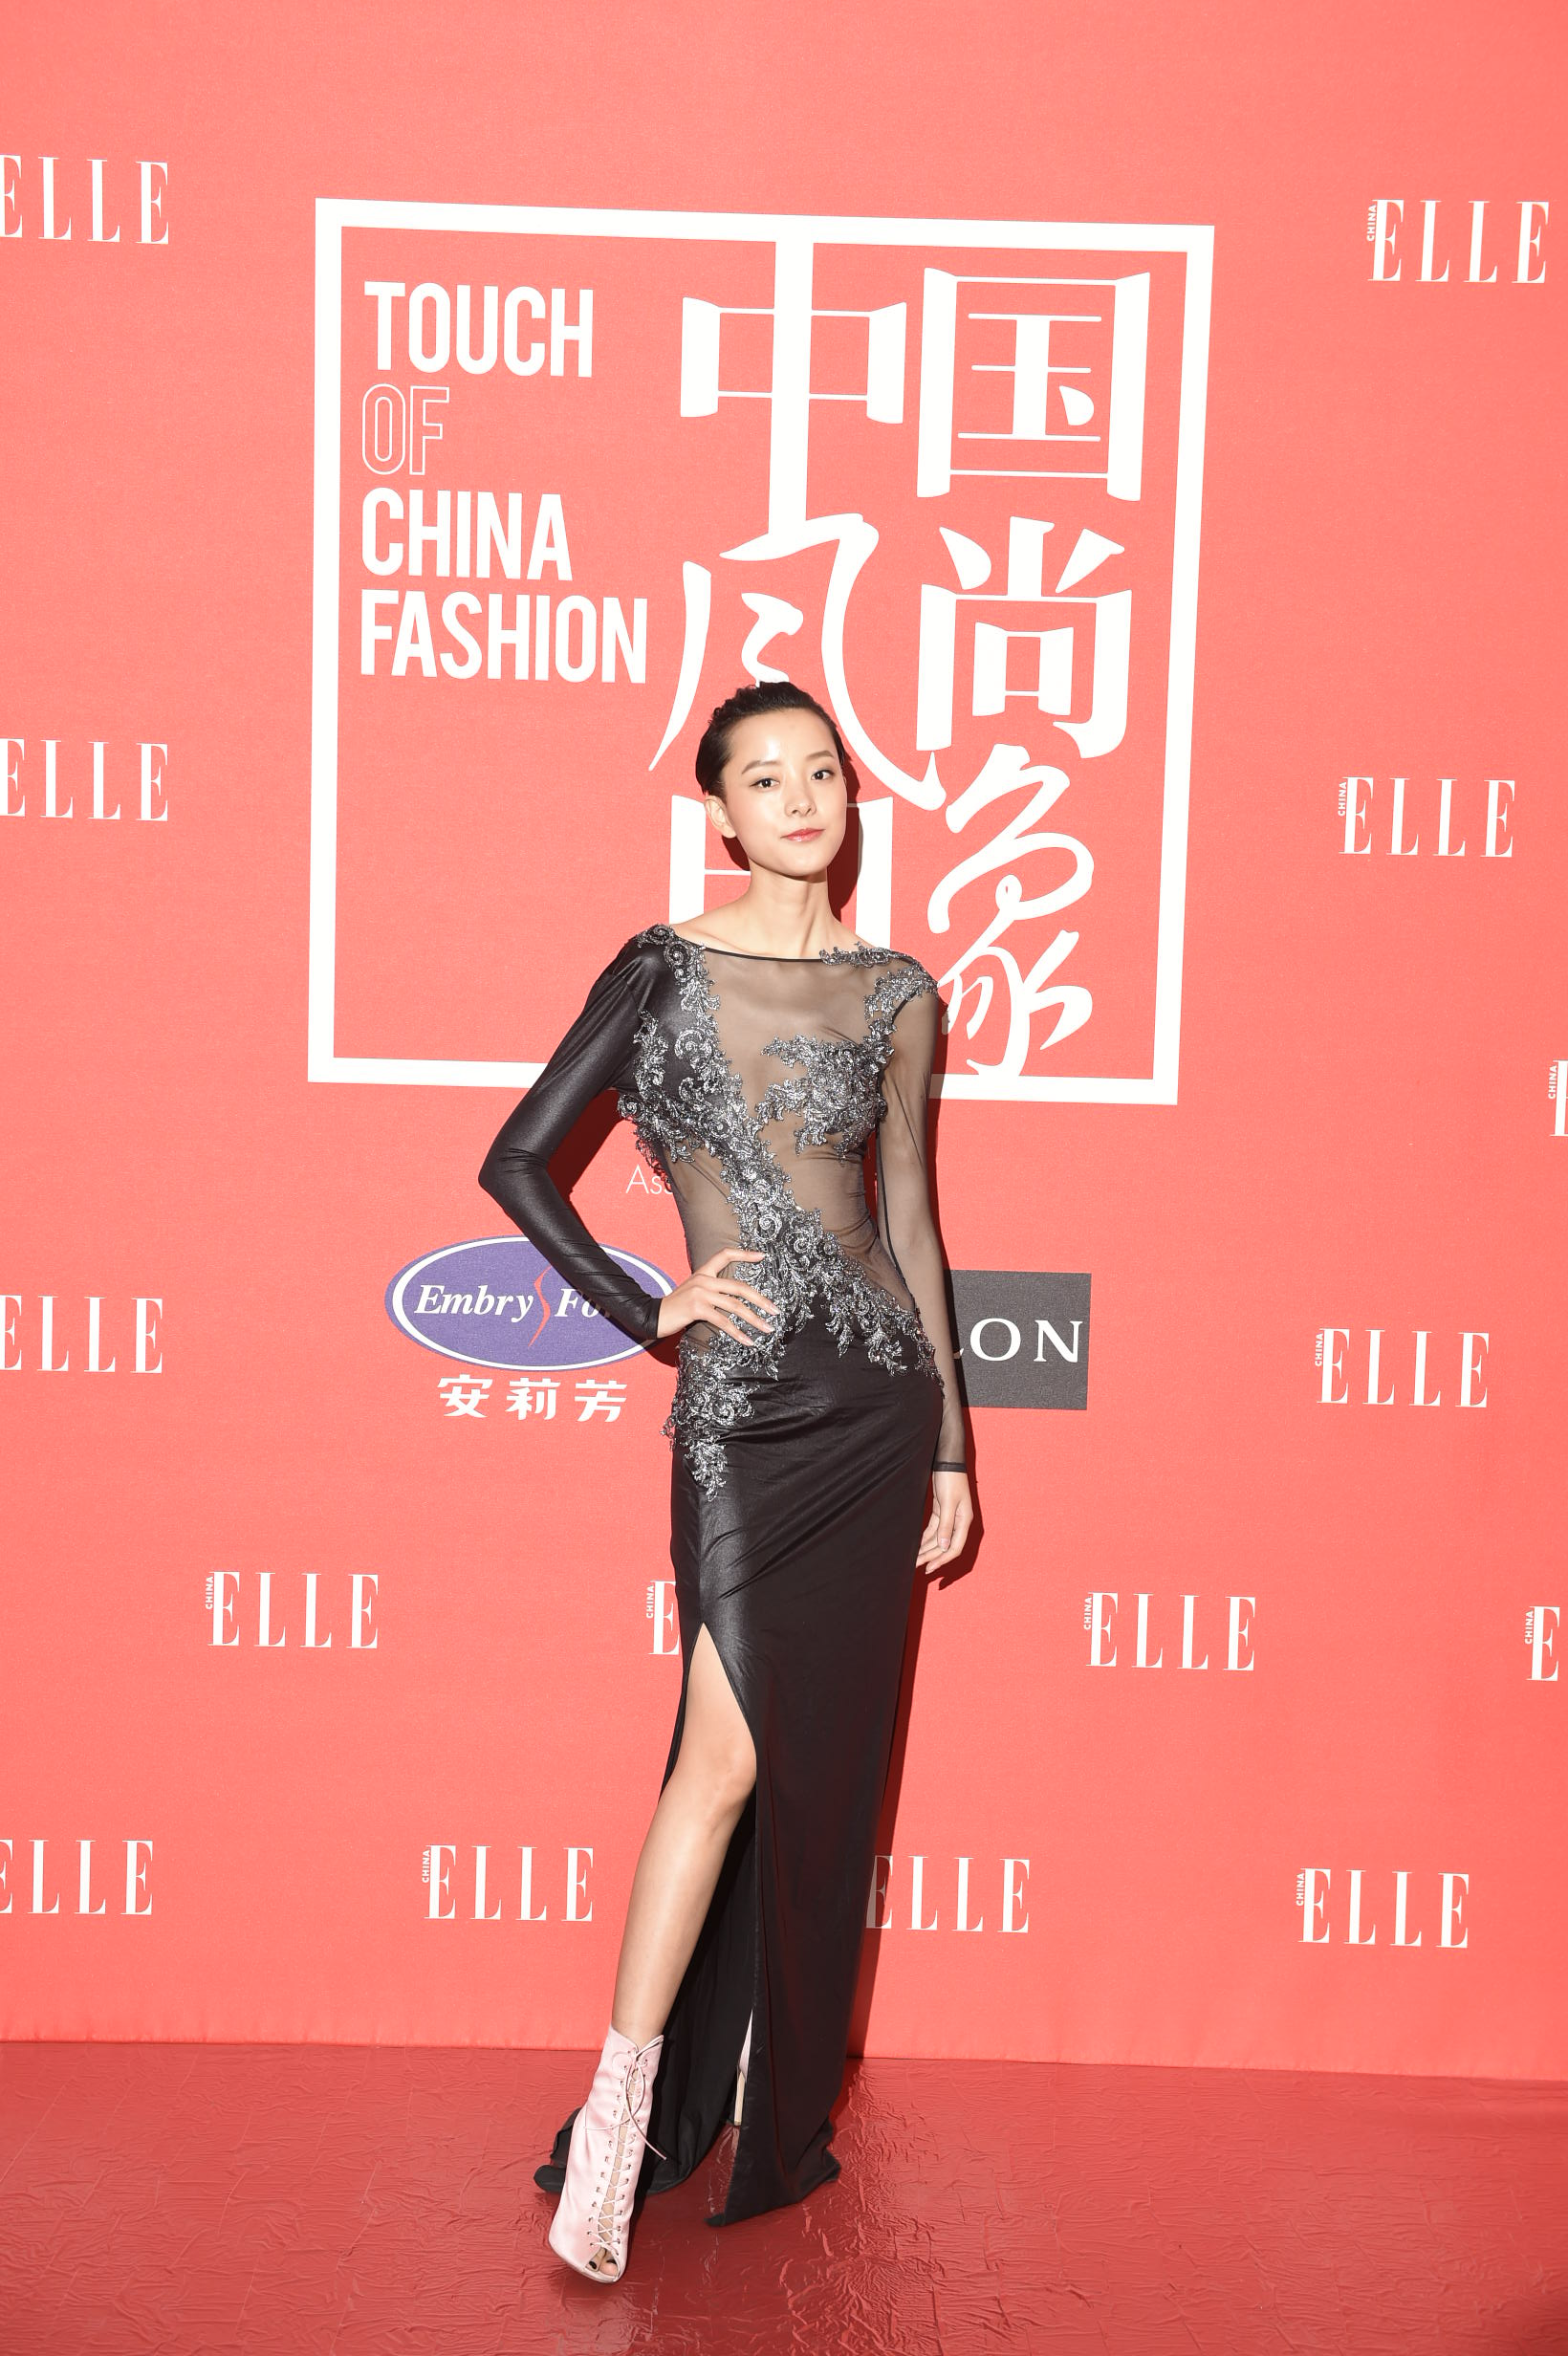 A touch of China fashion Elle porta il design cinese sulla scena mondiale  Shopping Milano Roma